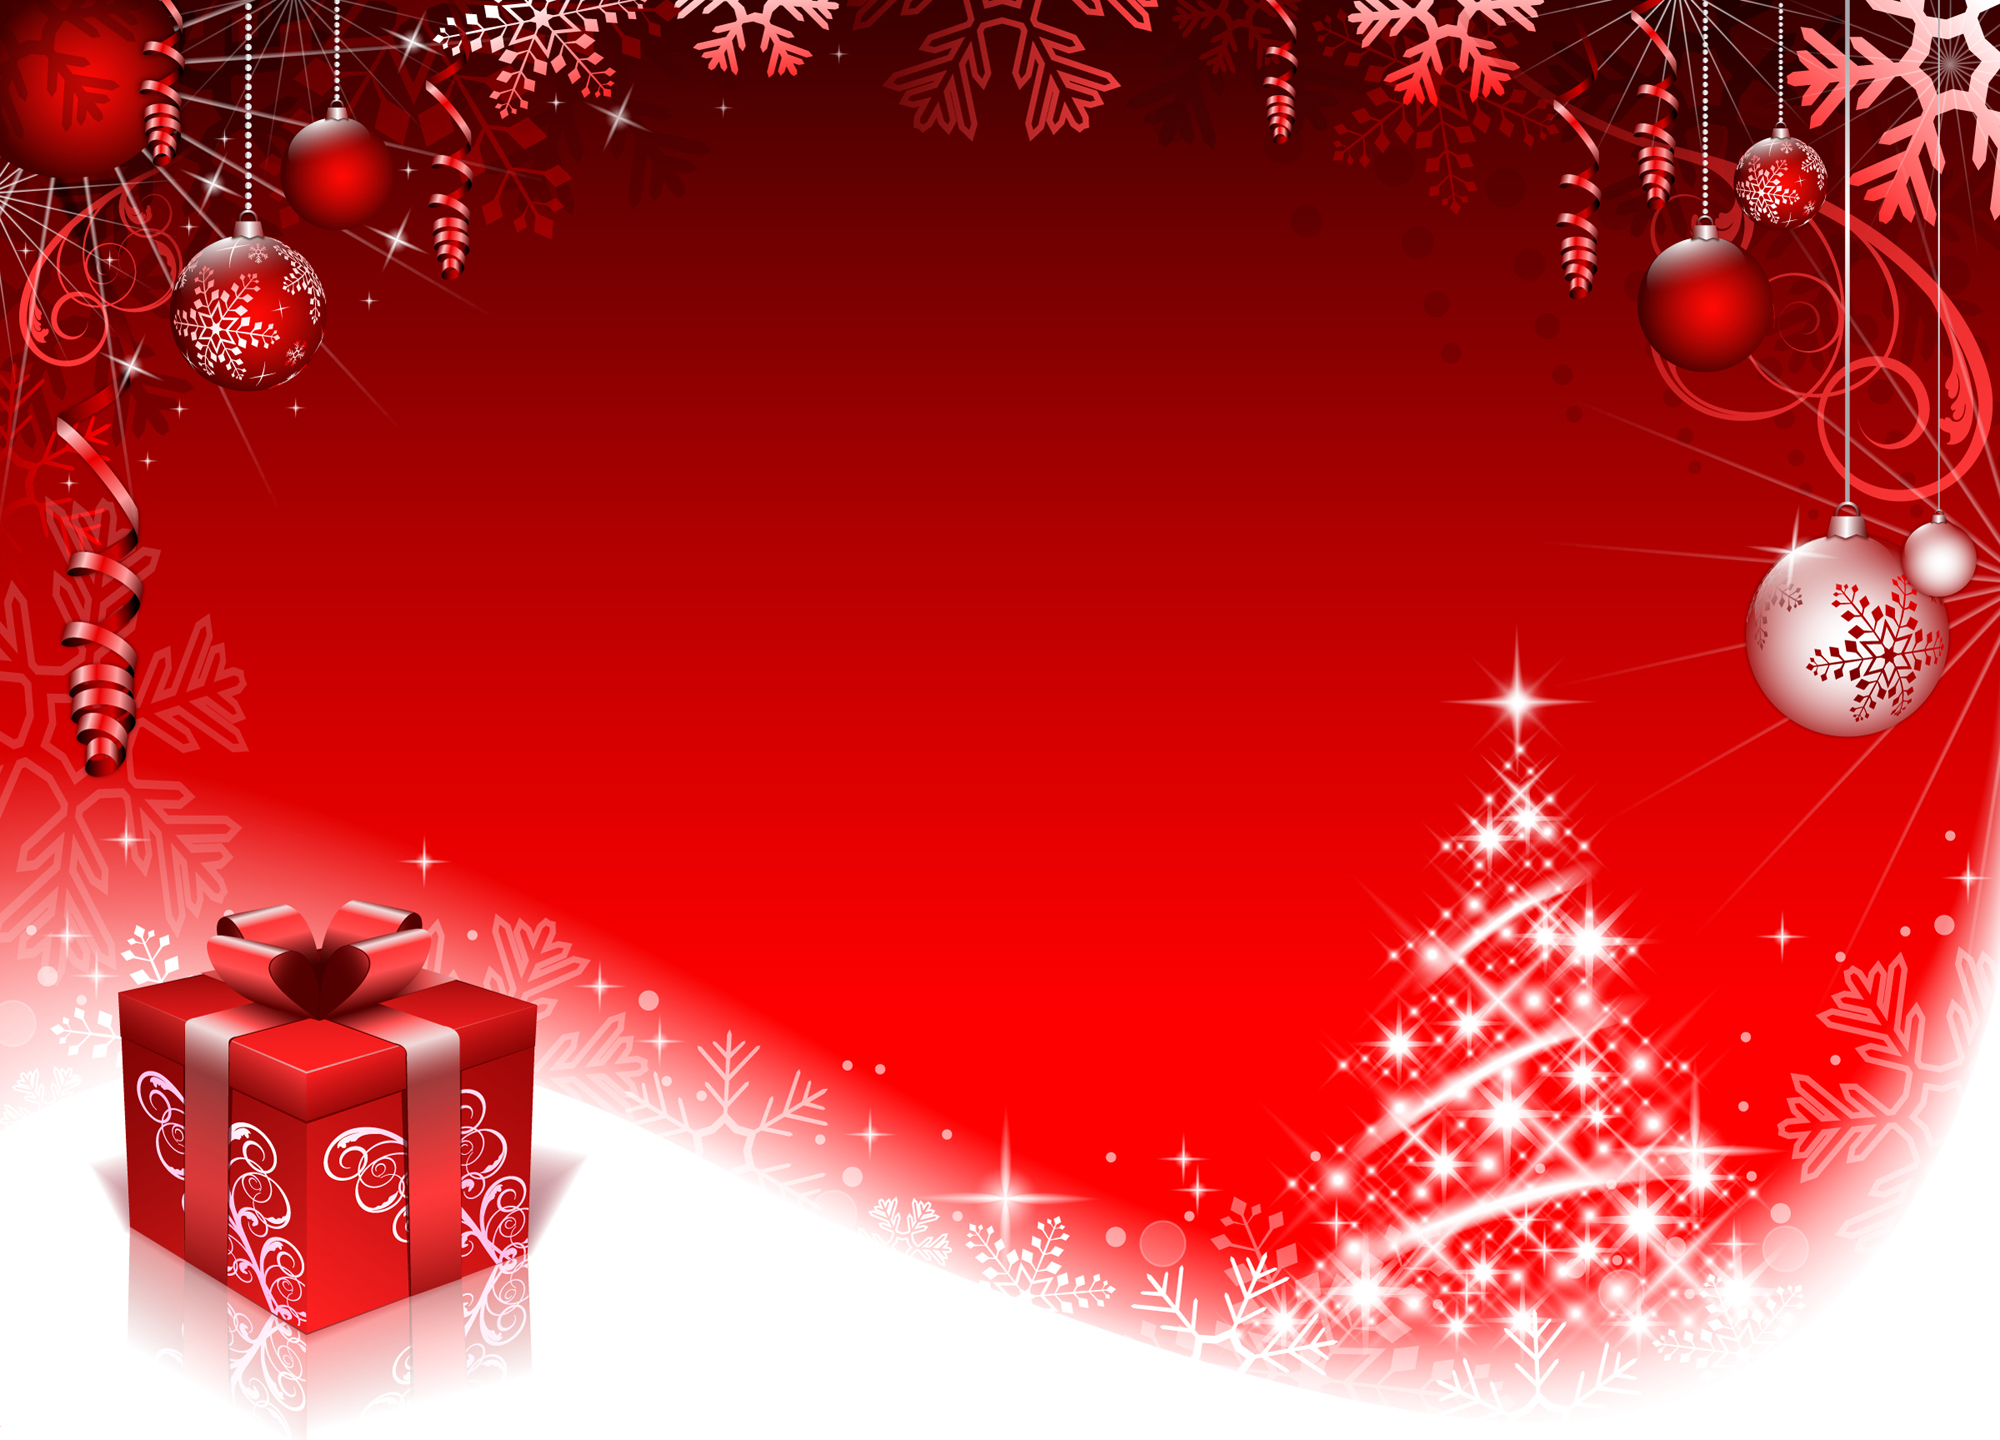 red style christmas background art vector 01 free download